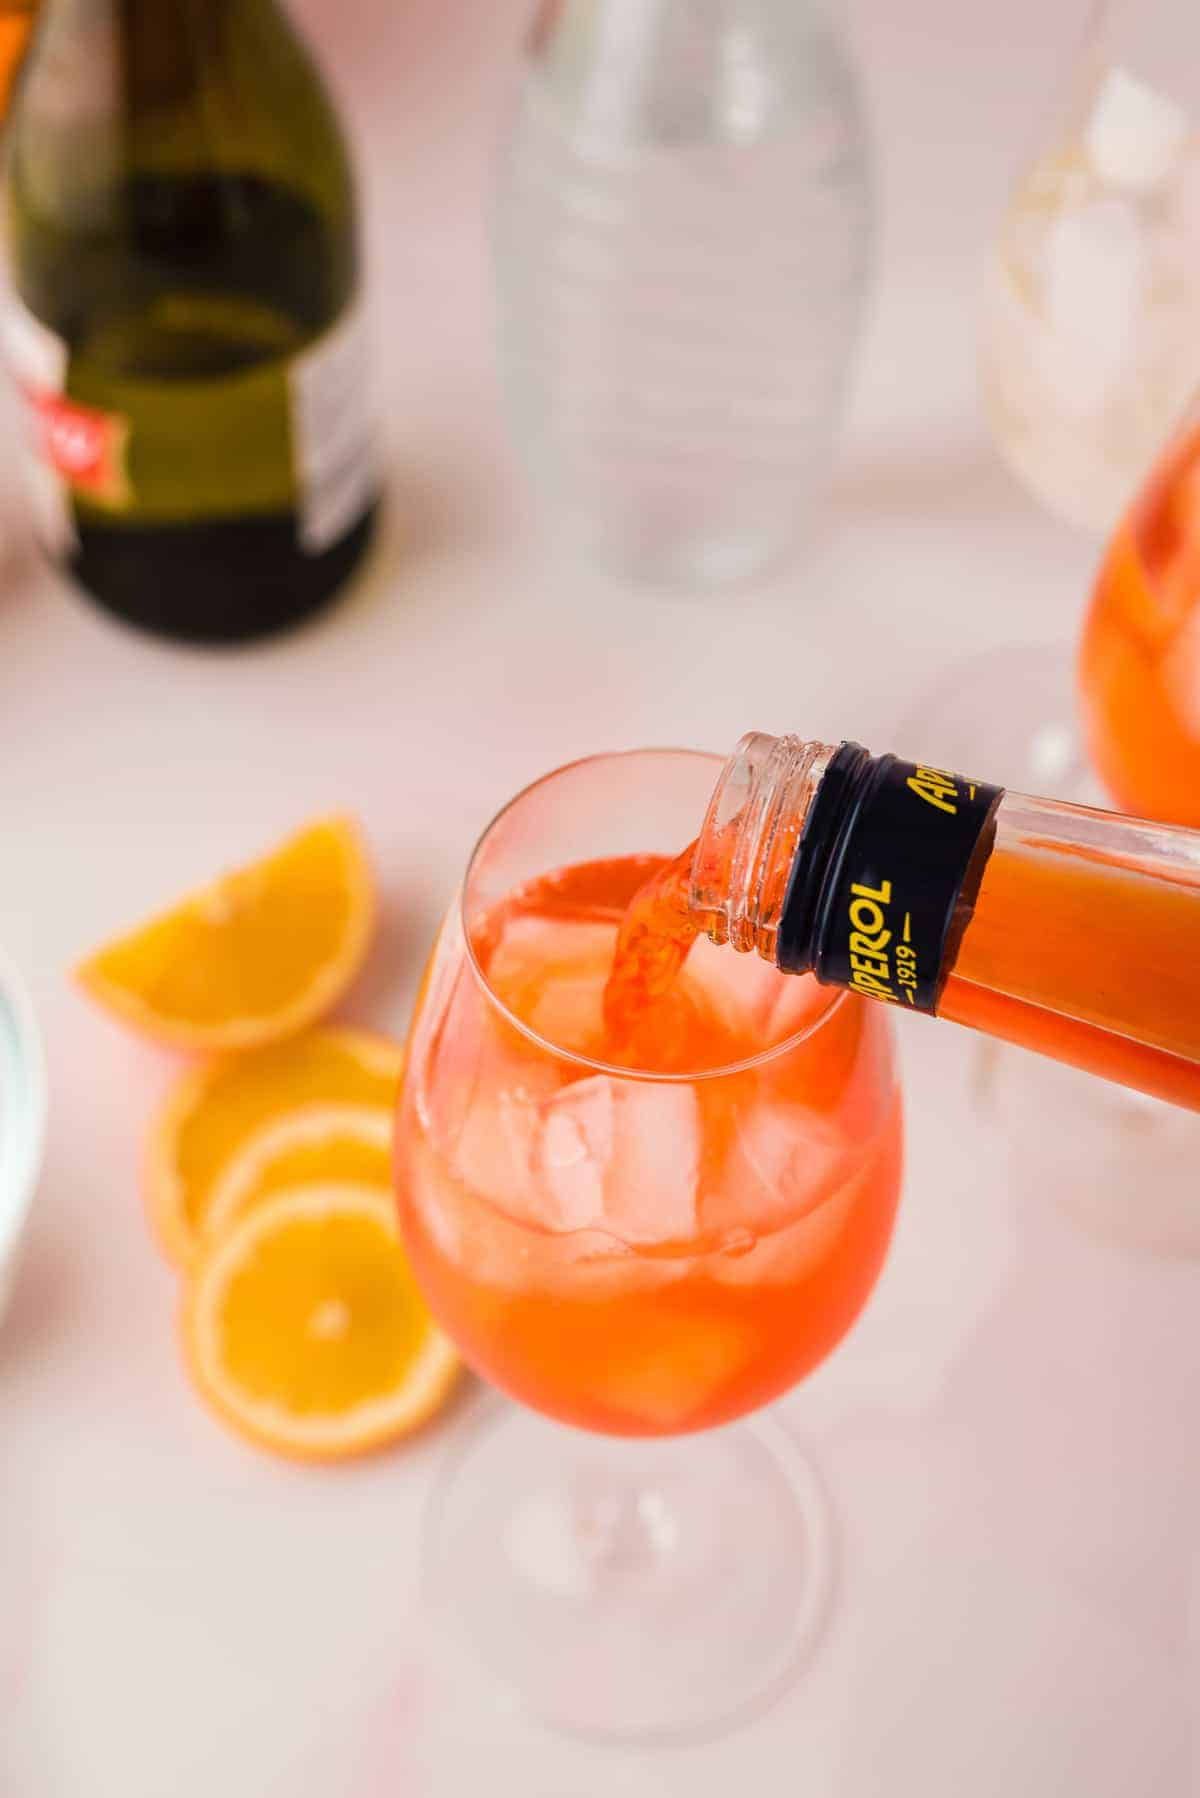 Aperol being poured into a wine glass with ice.